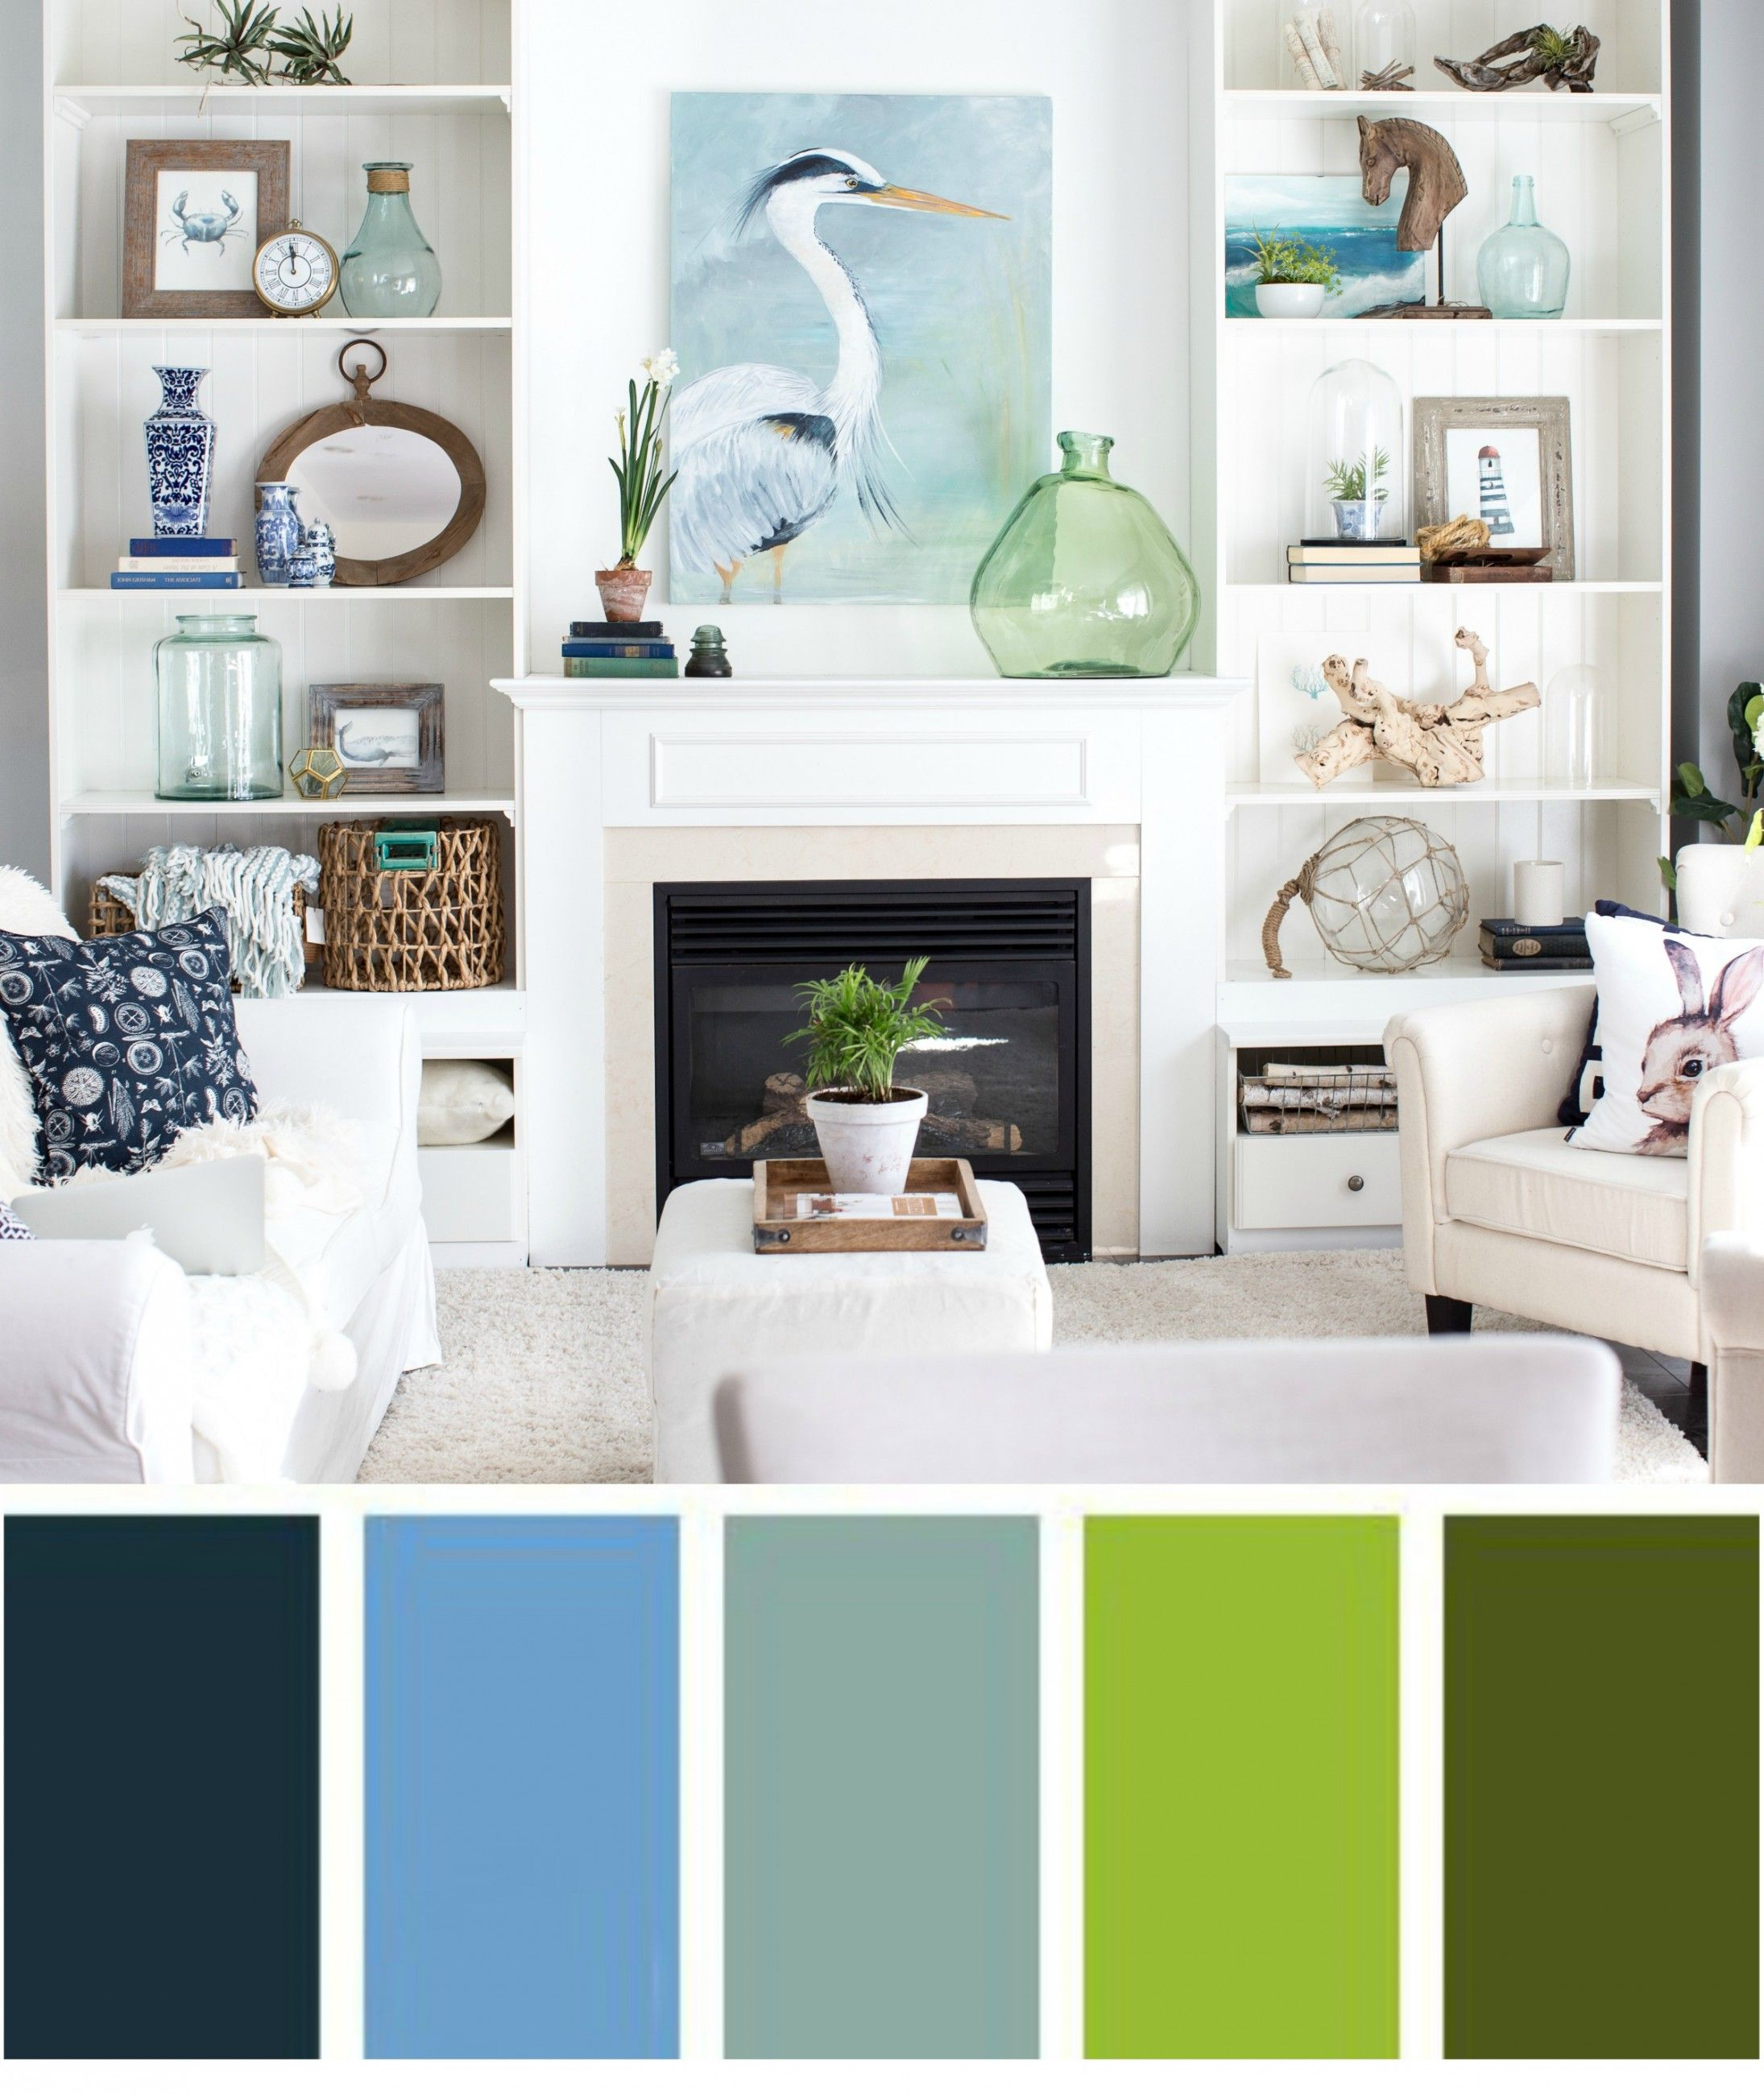 Küche interieur farbschemata  reasons why your home does not look cohesive  beach cottage style